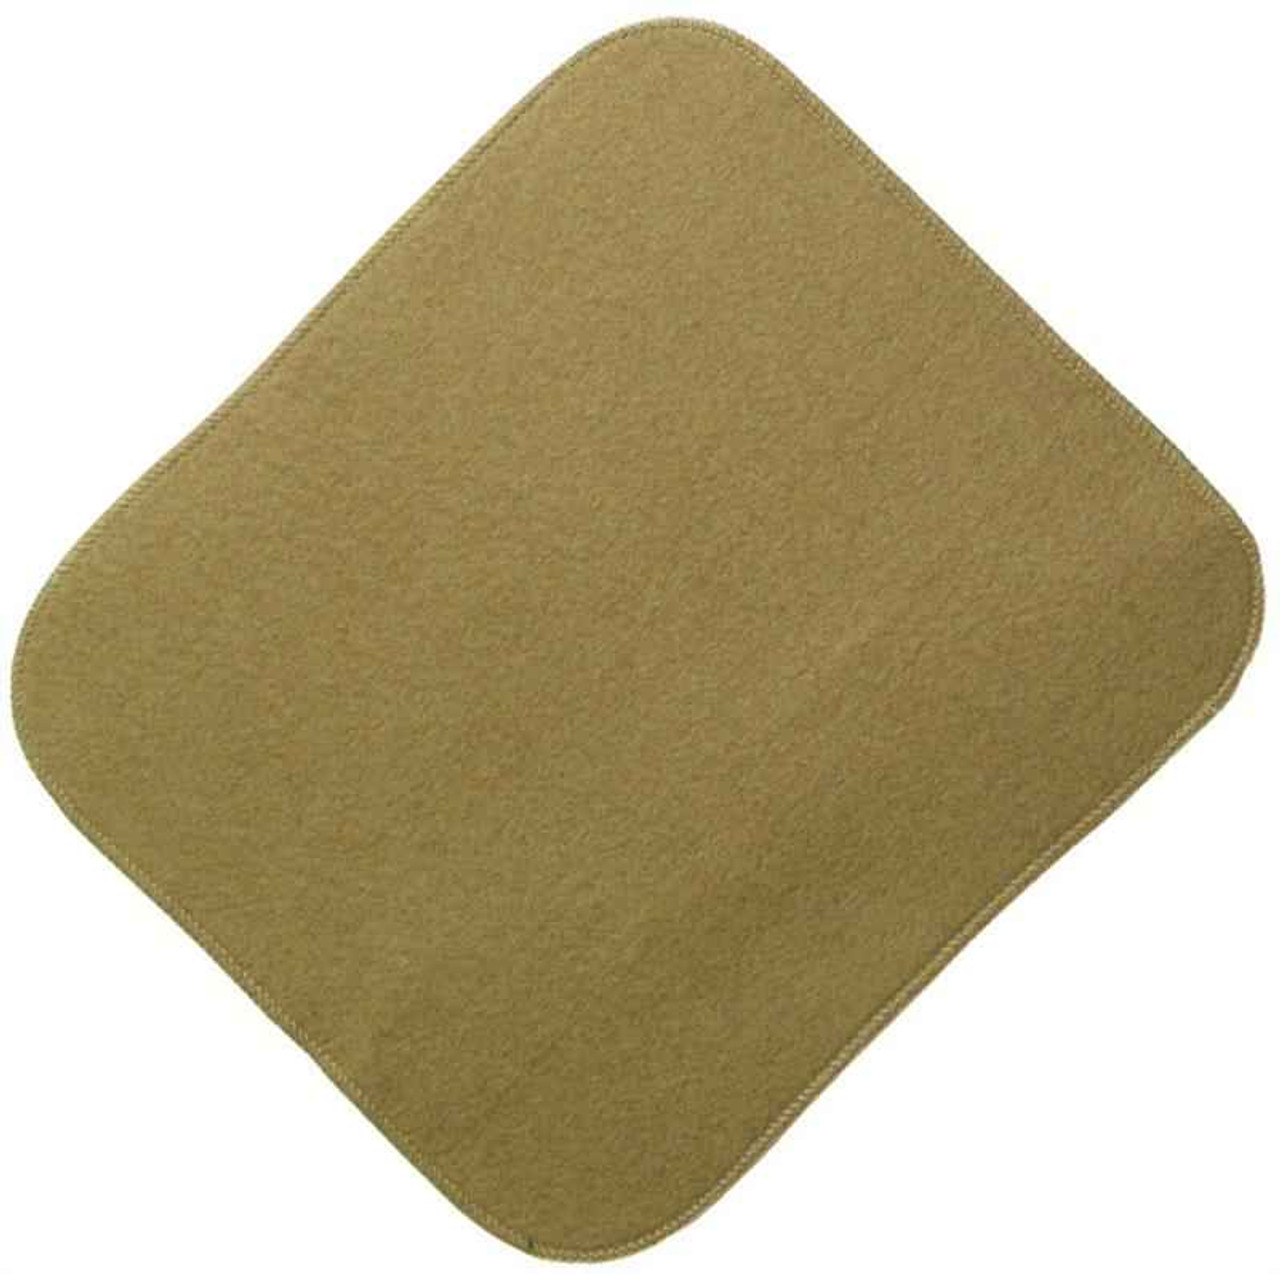 """ABKT AB056T Tac Tactical Gun Cleaning Mat - 12"""" x 10"""". 1.5 mil thick. Coyote Brown"""